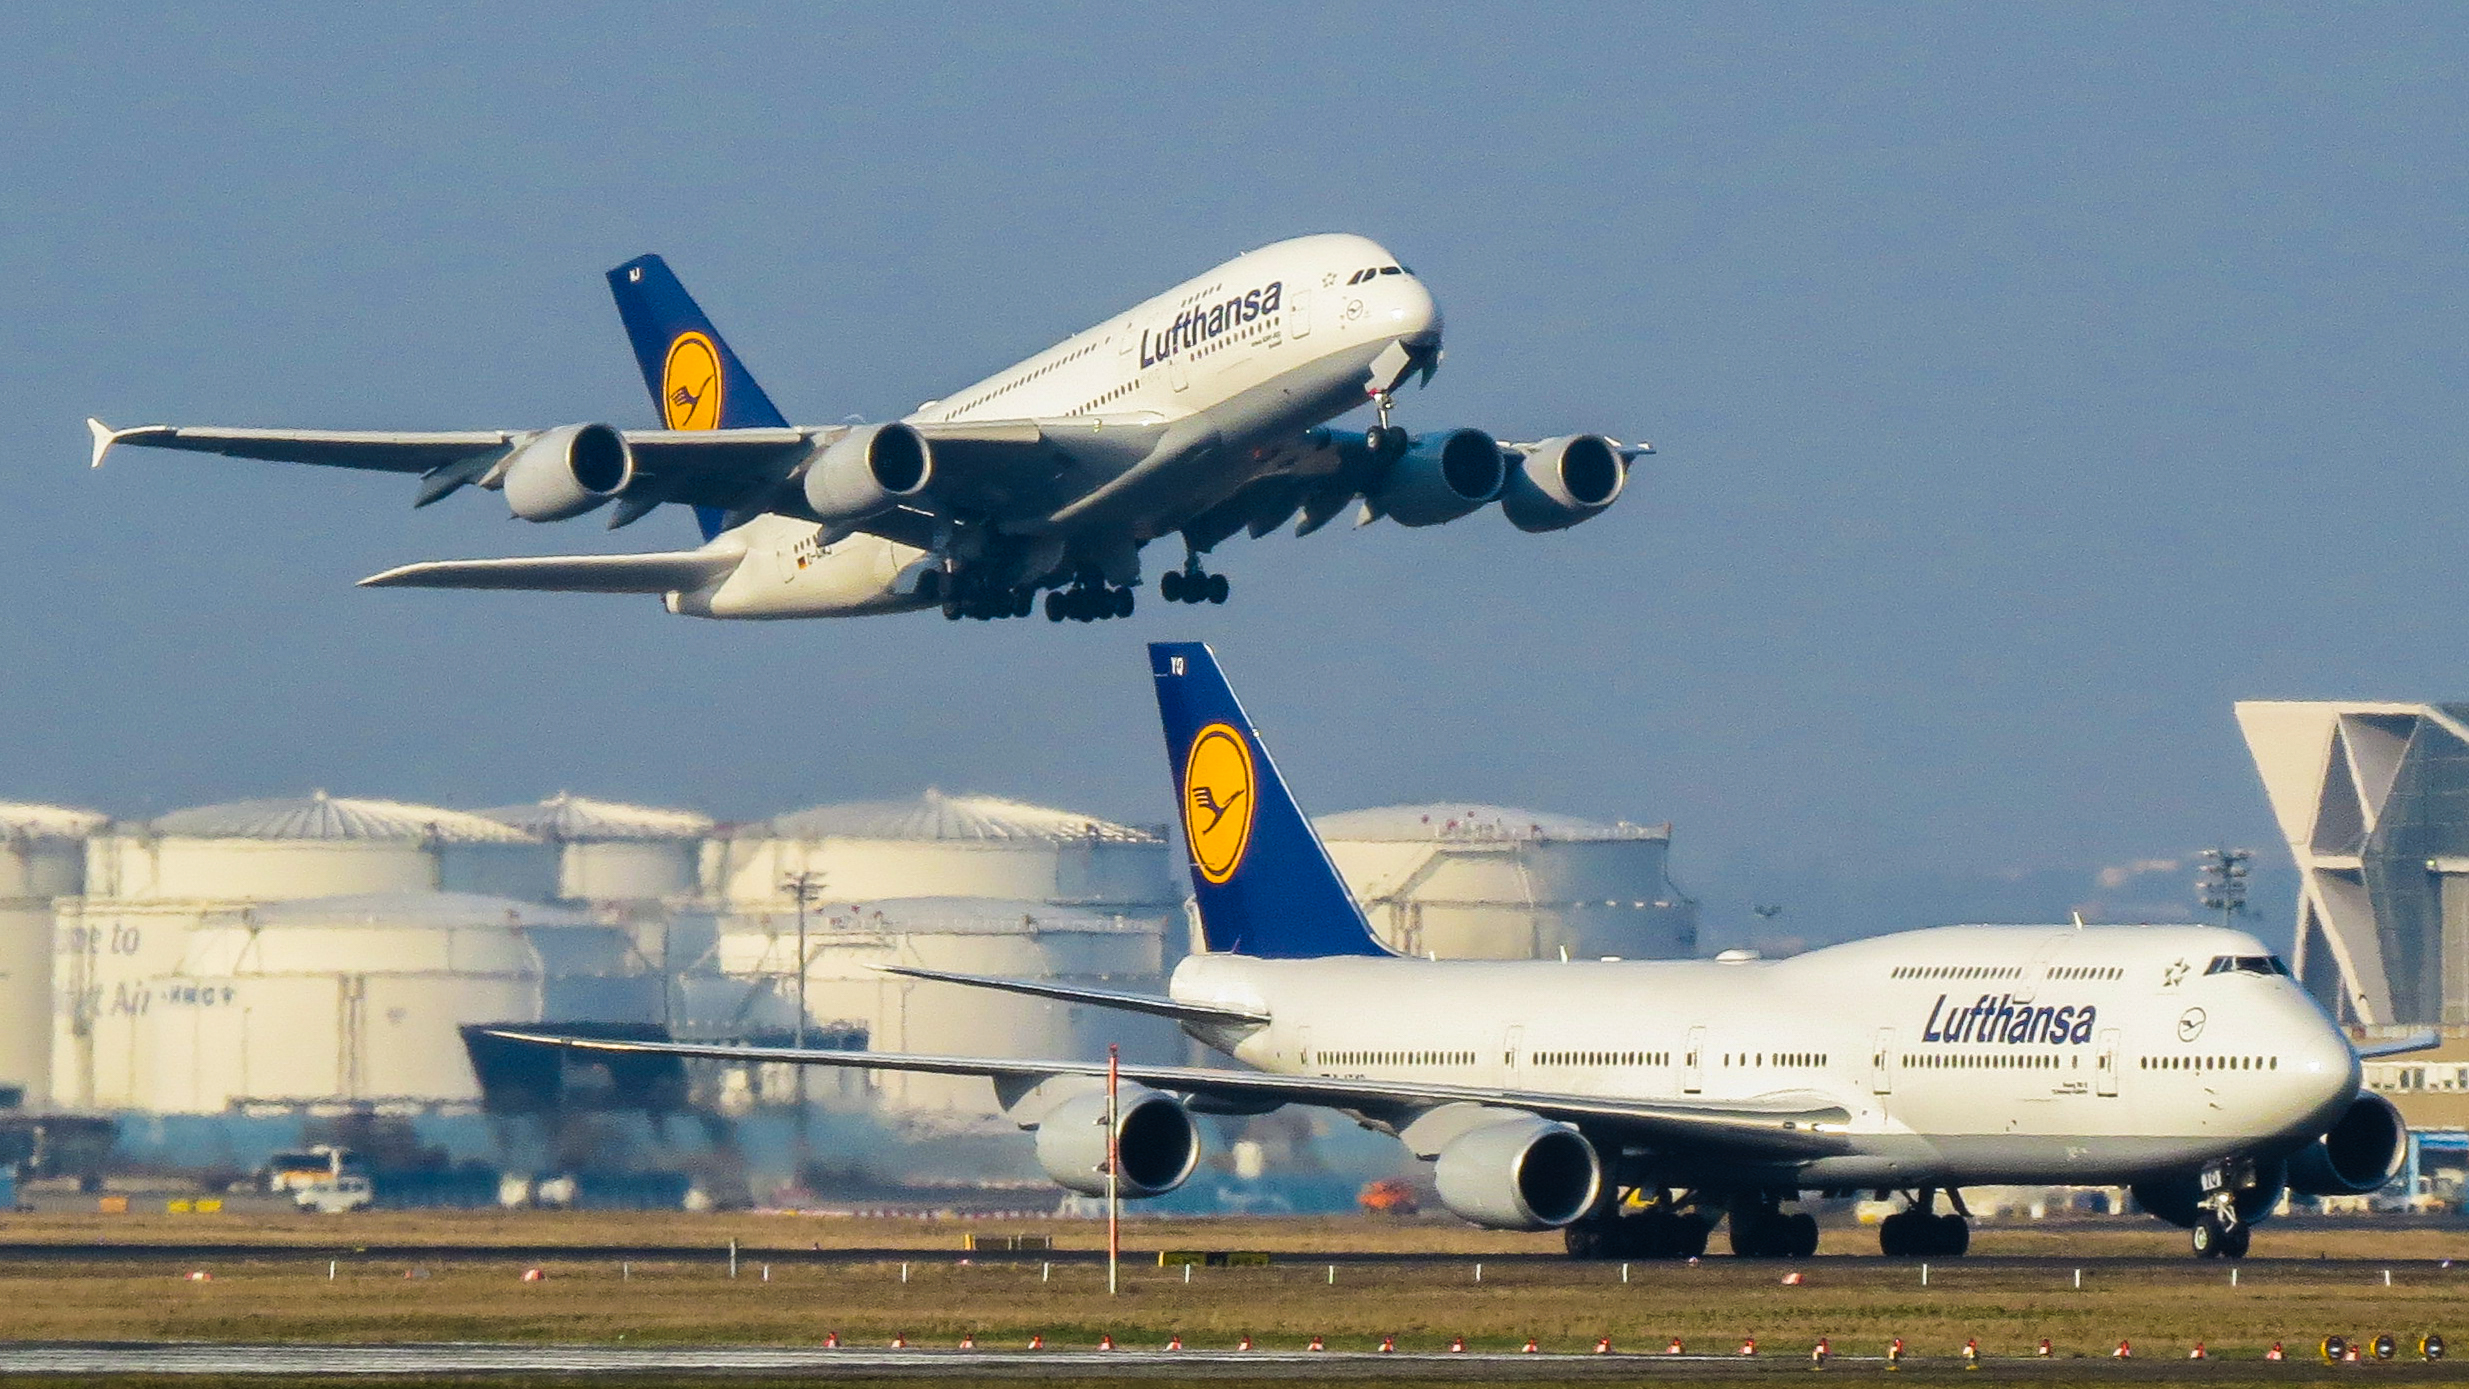 What is the History behind the Airbus A380 Super Jumbo?